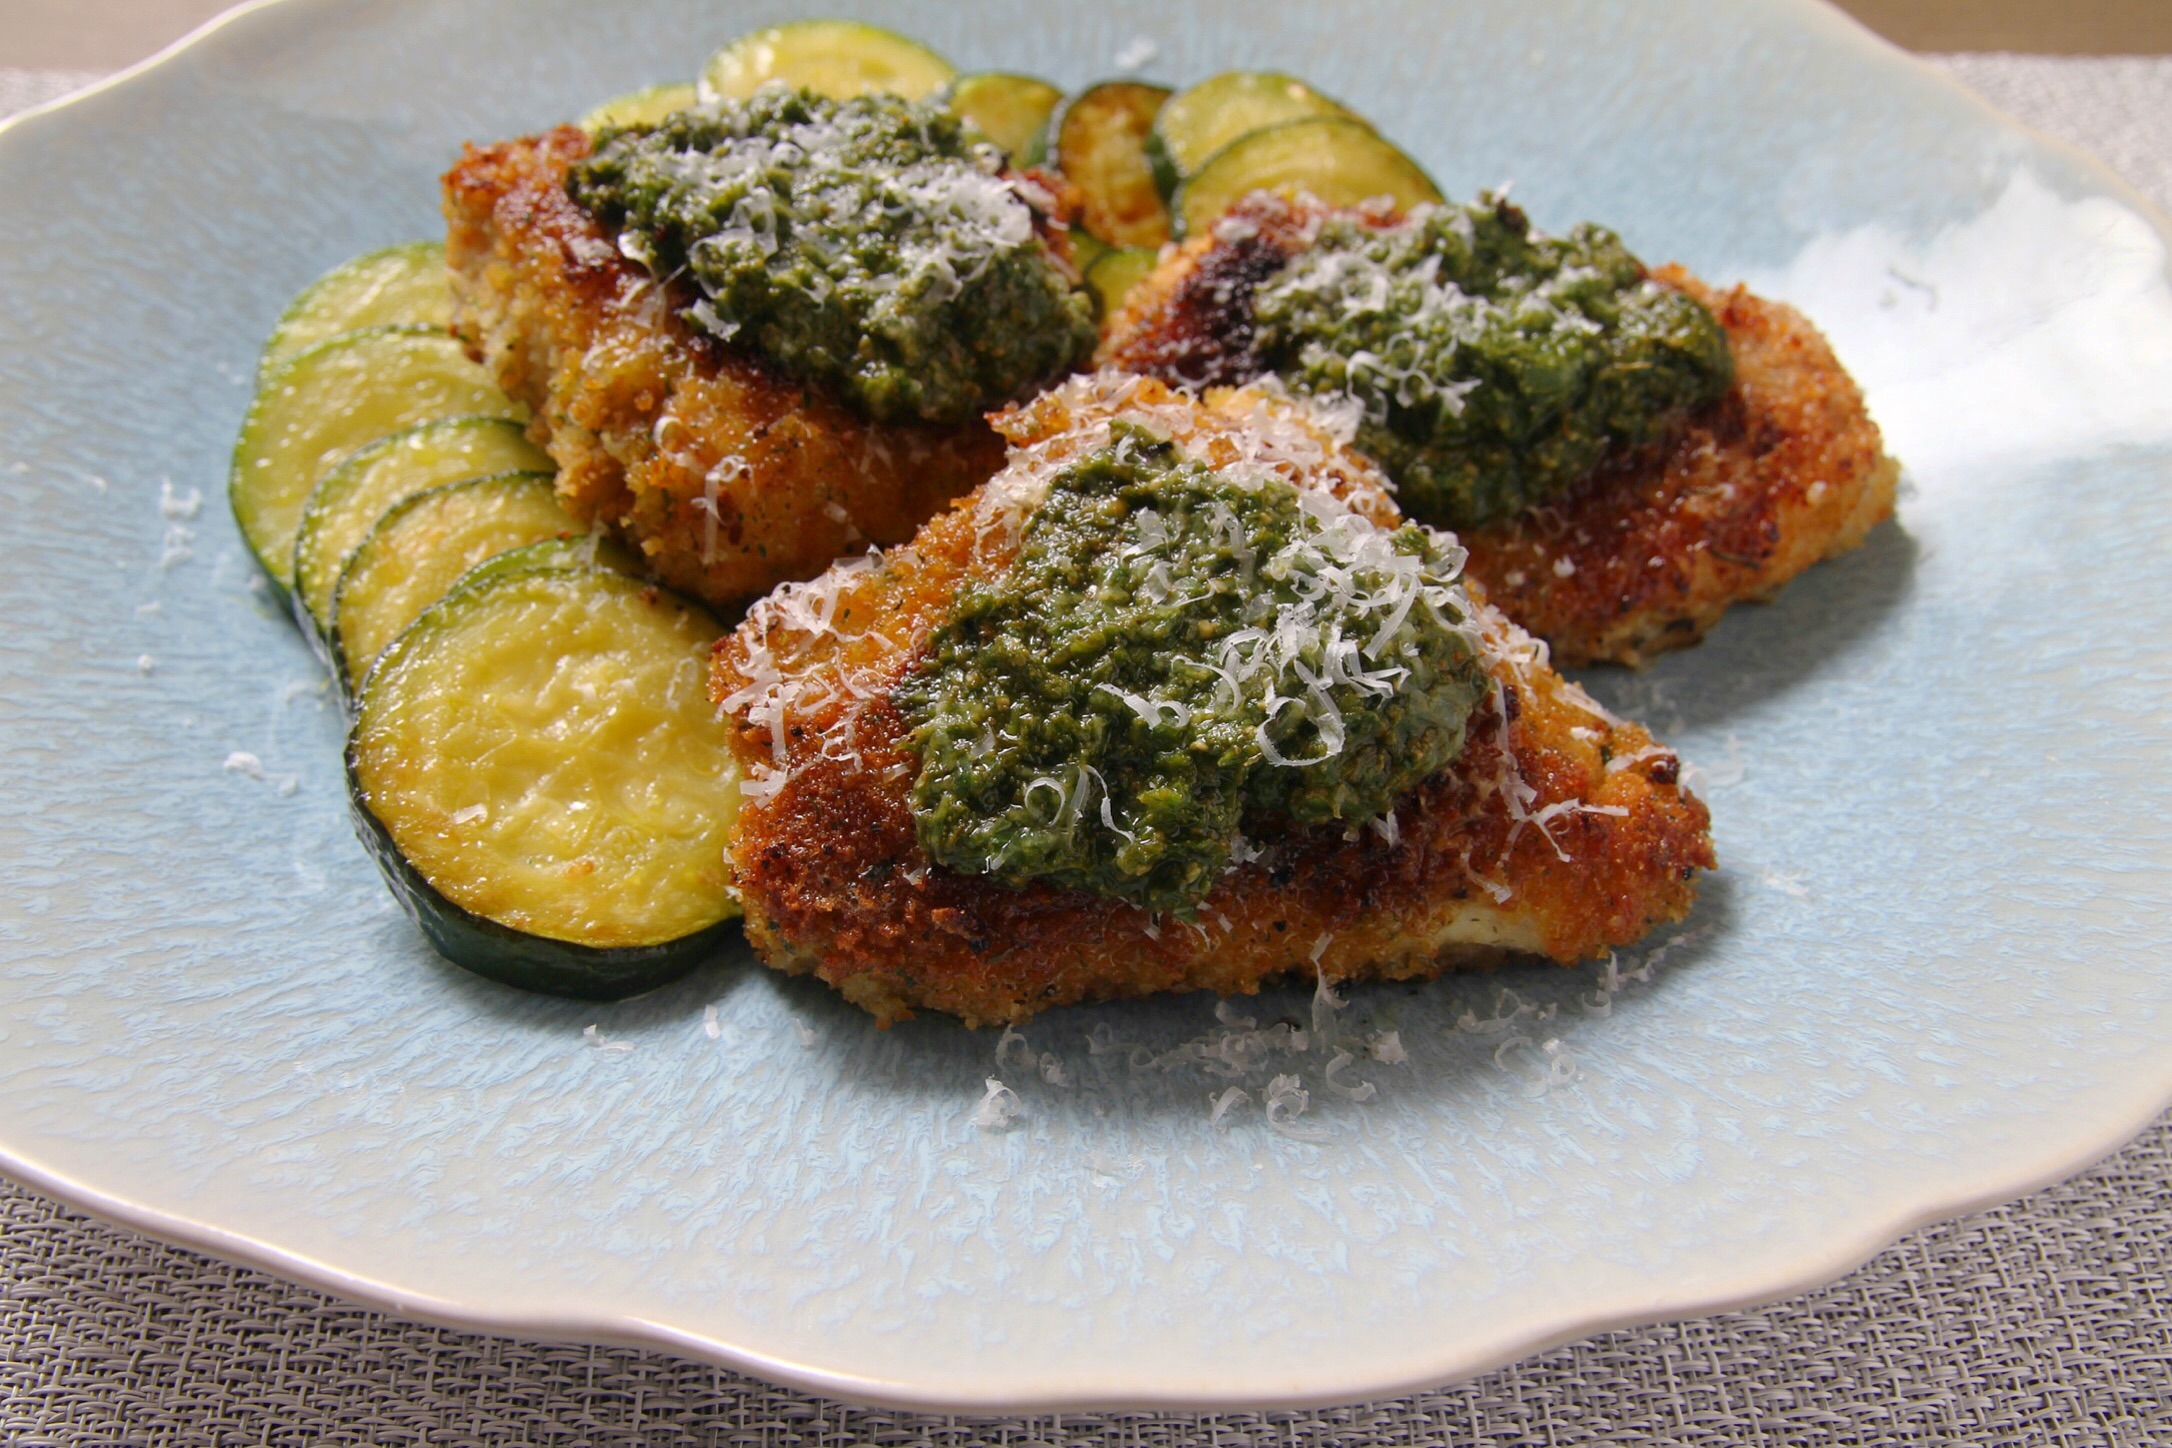 Italian breadcrumb chicken topped with basil pesto and a side of sauteed zucchini.